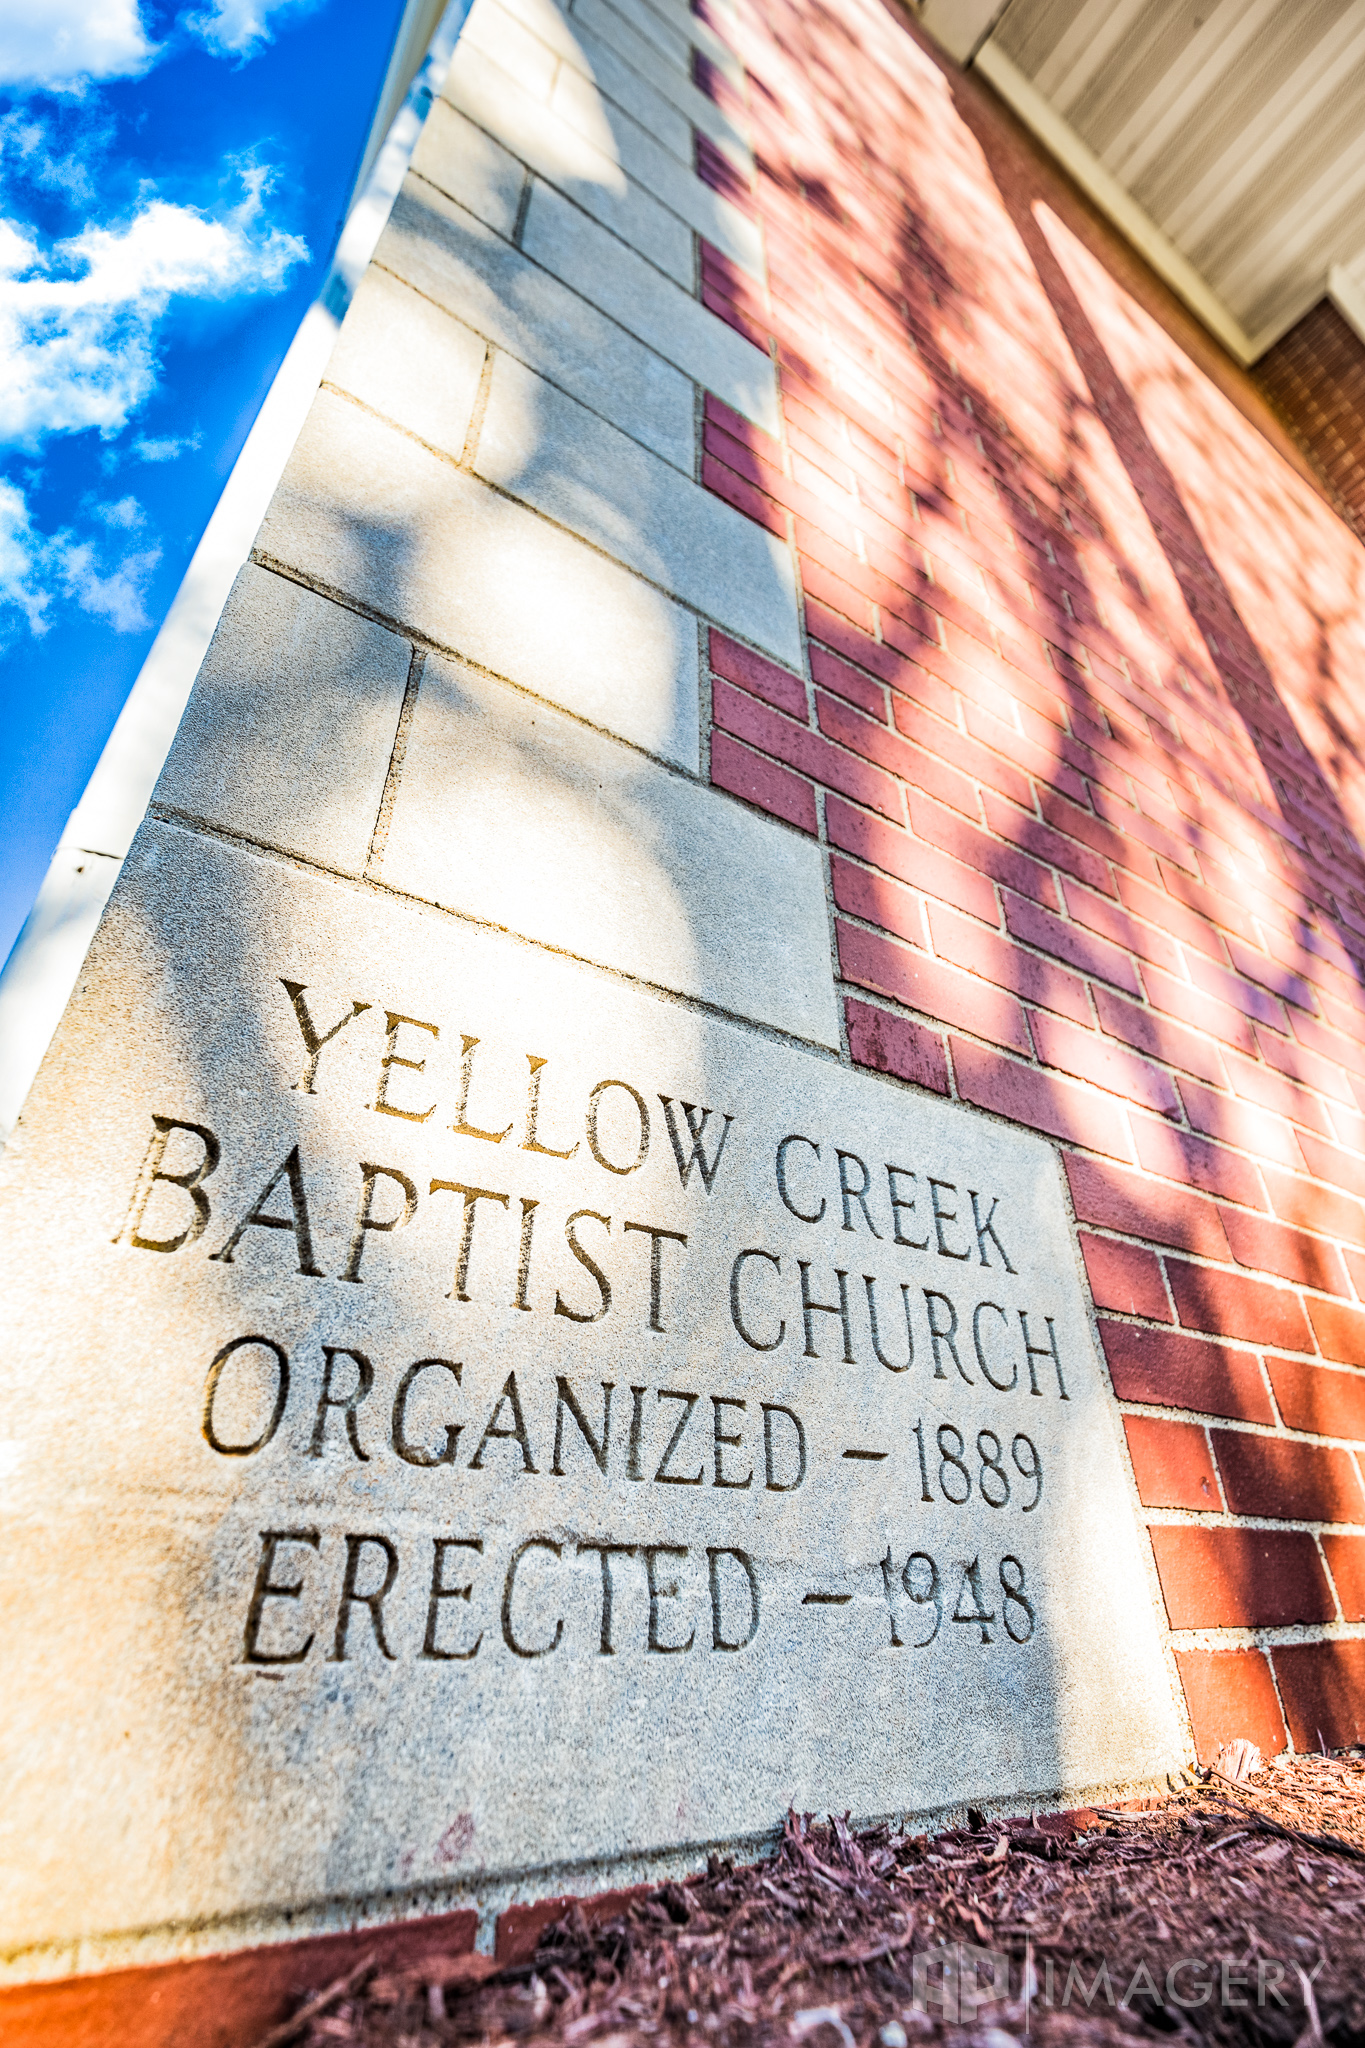 Yellow Creek Baptist - AP Imagery 2015